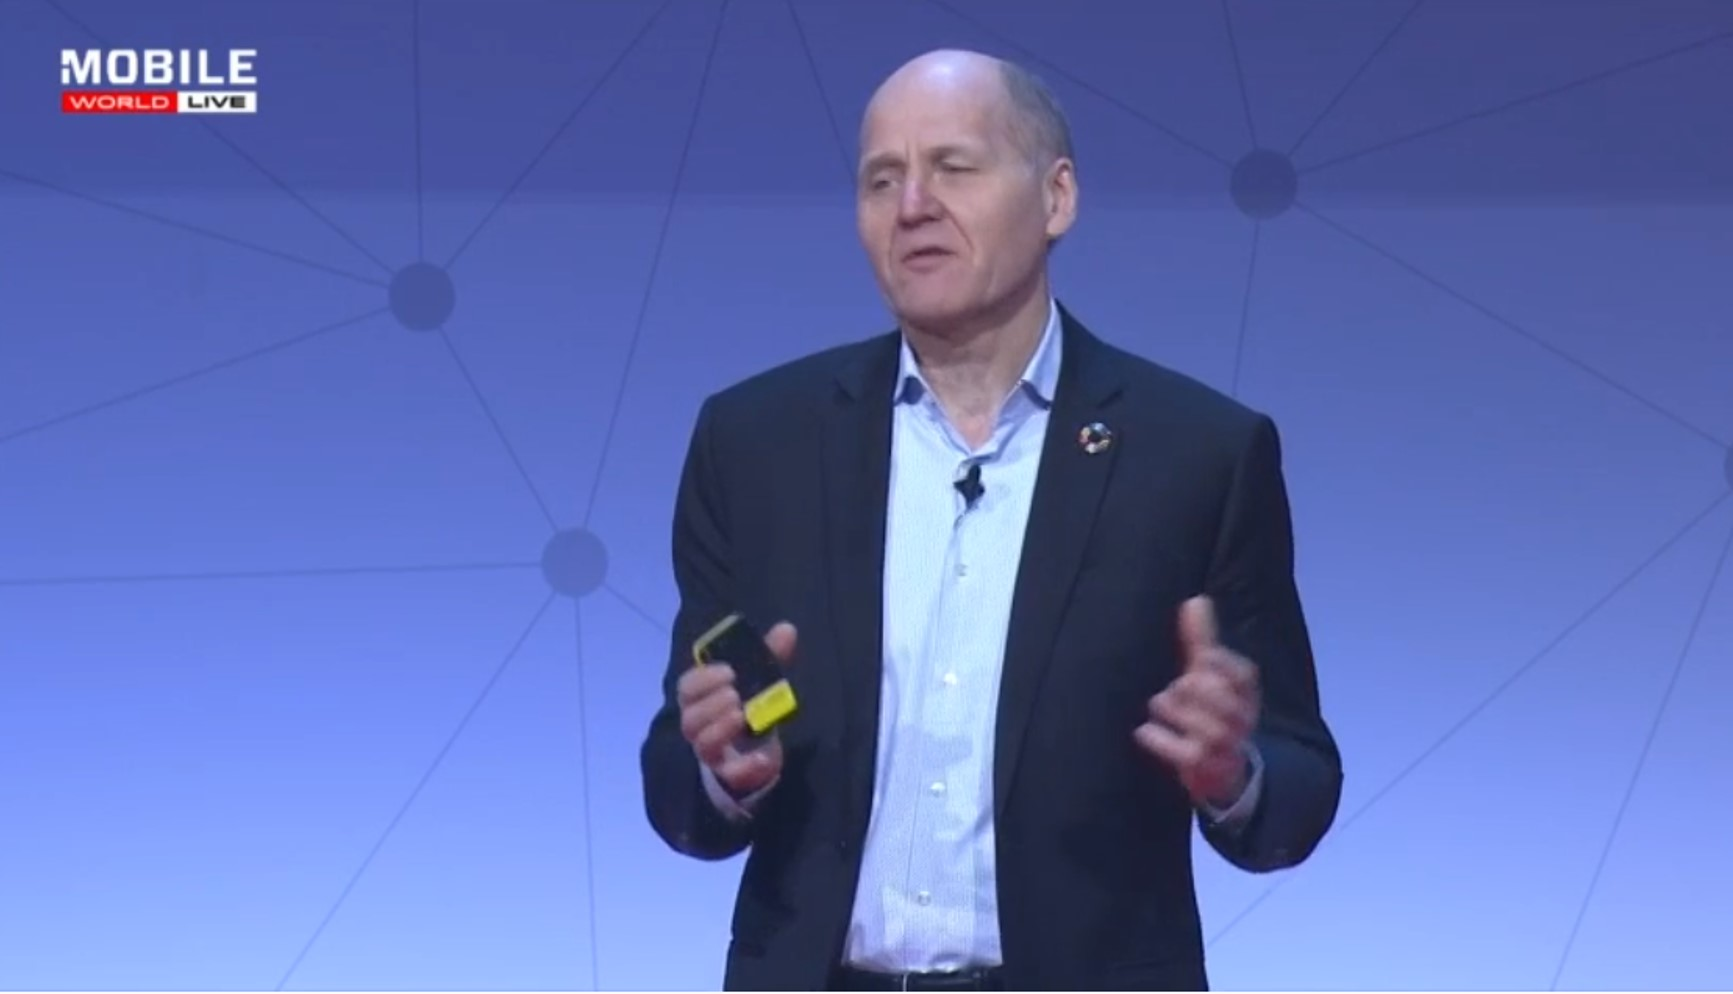 Telenor CEO expects 5G to fuel perfect storm - Mobile World Live